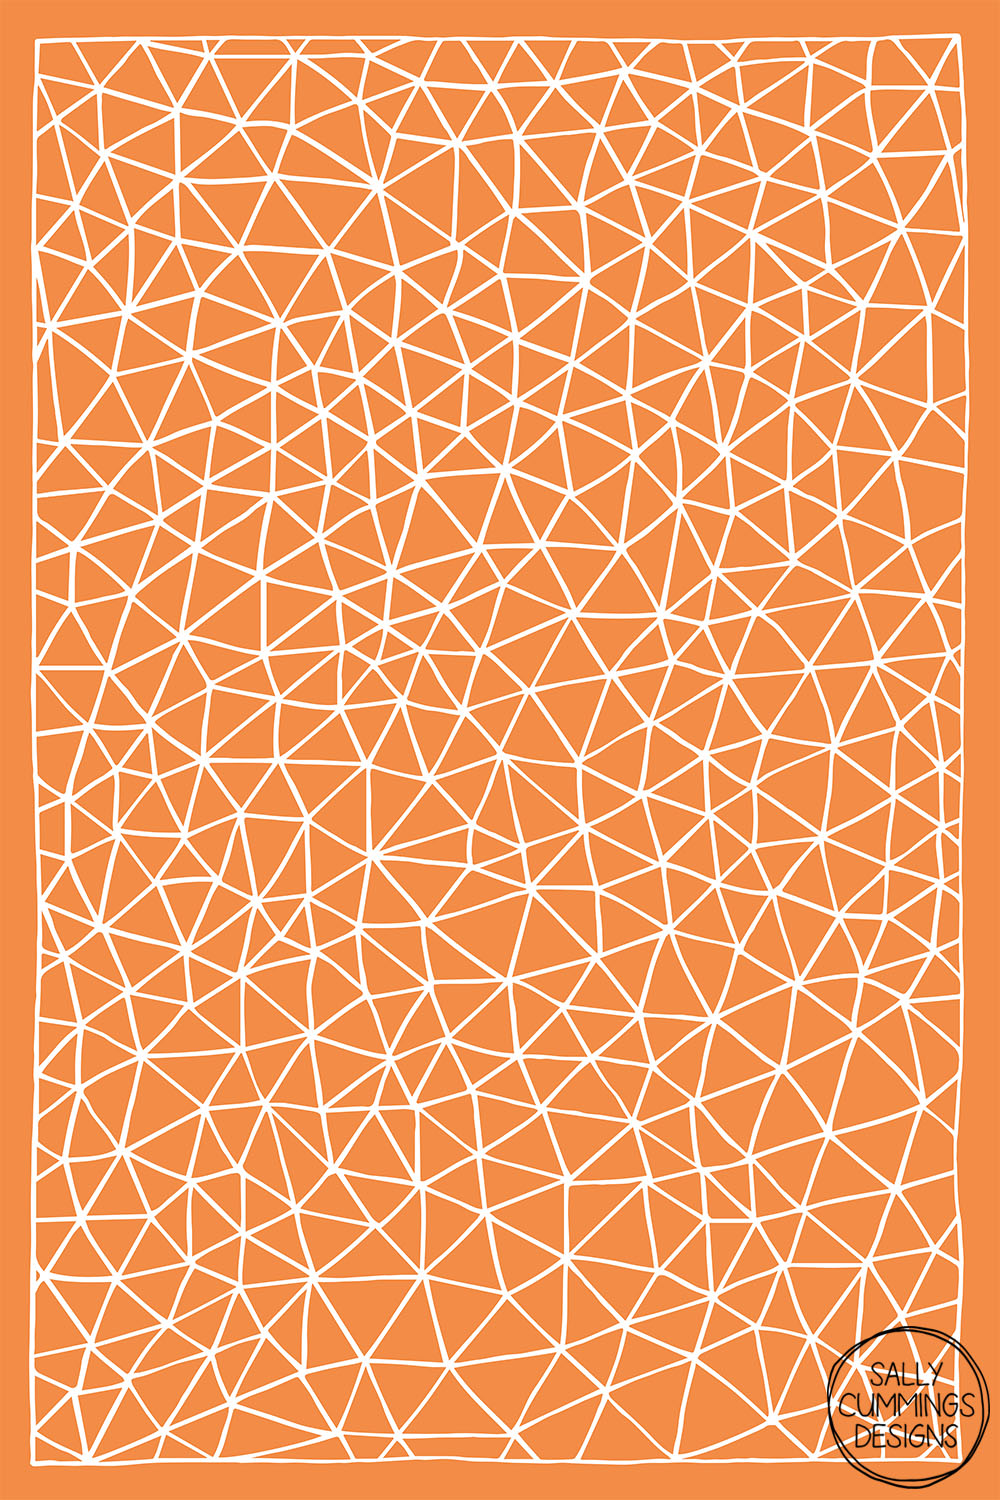 Sally Cummings Designs - Connectivity design (white on orange)